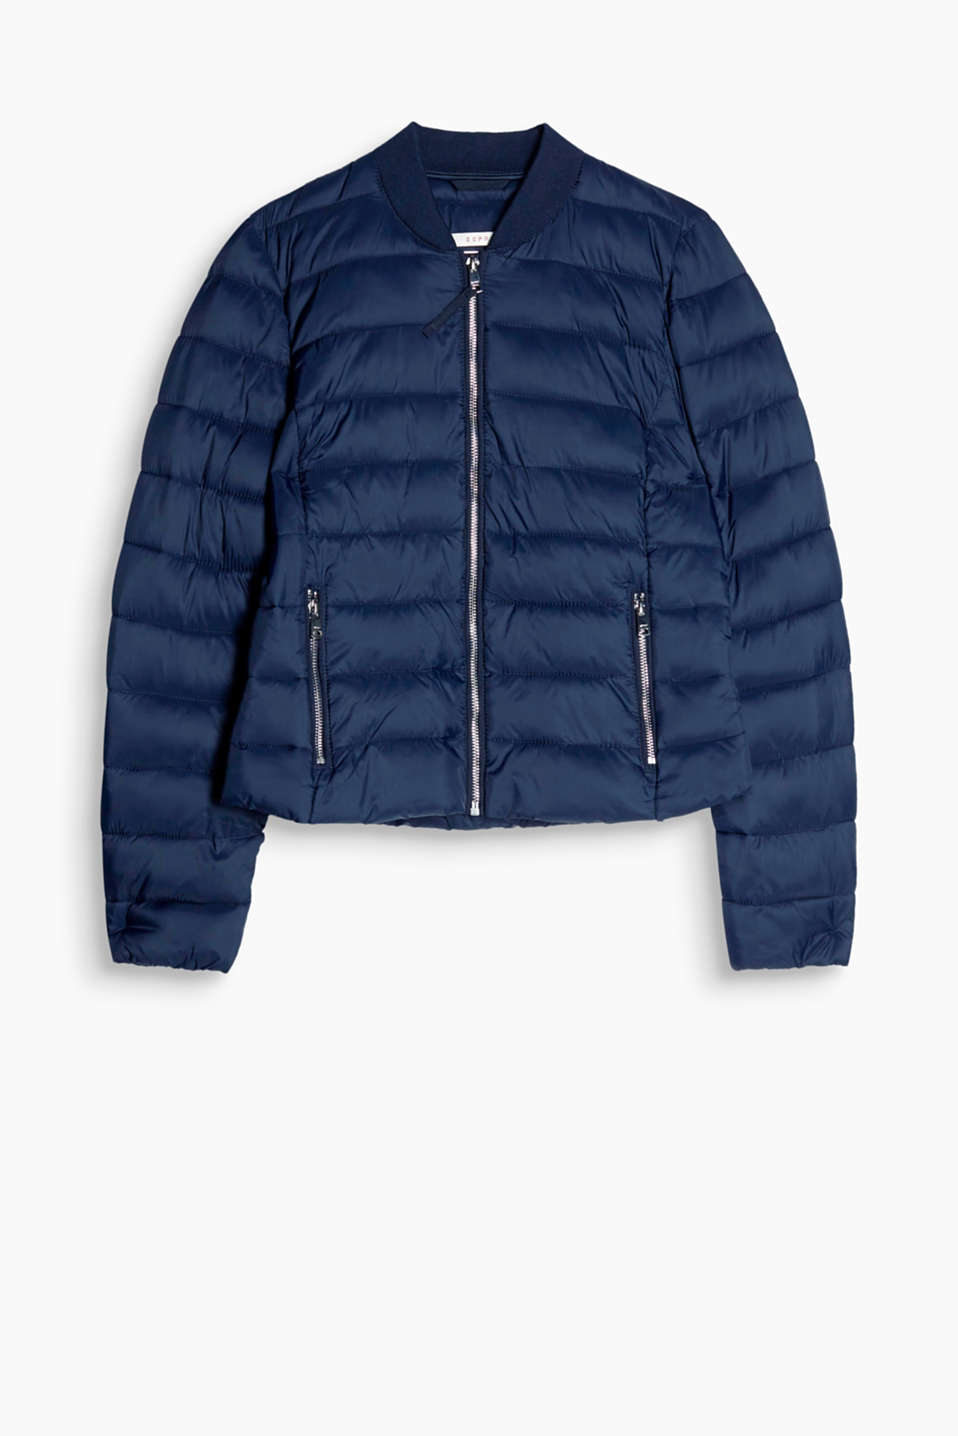 We love lightweight quilted style - and this fitted, short jacket with a knitted collar and chunky zips!